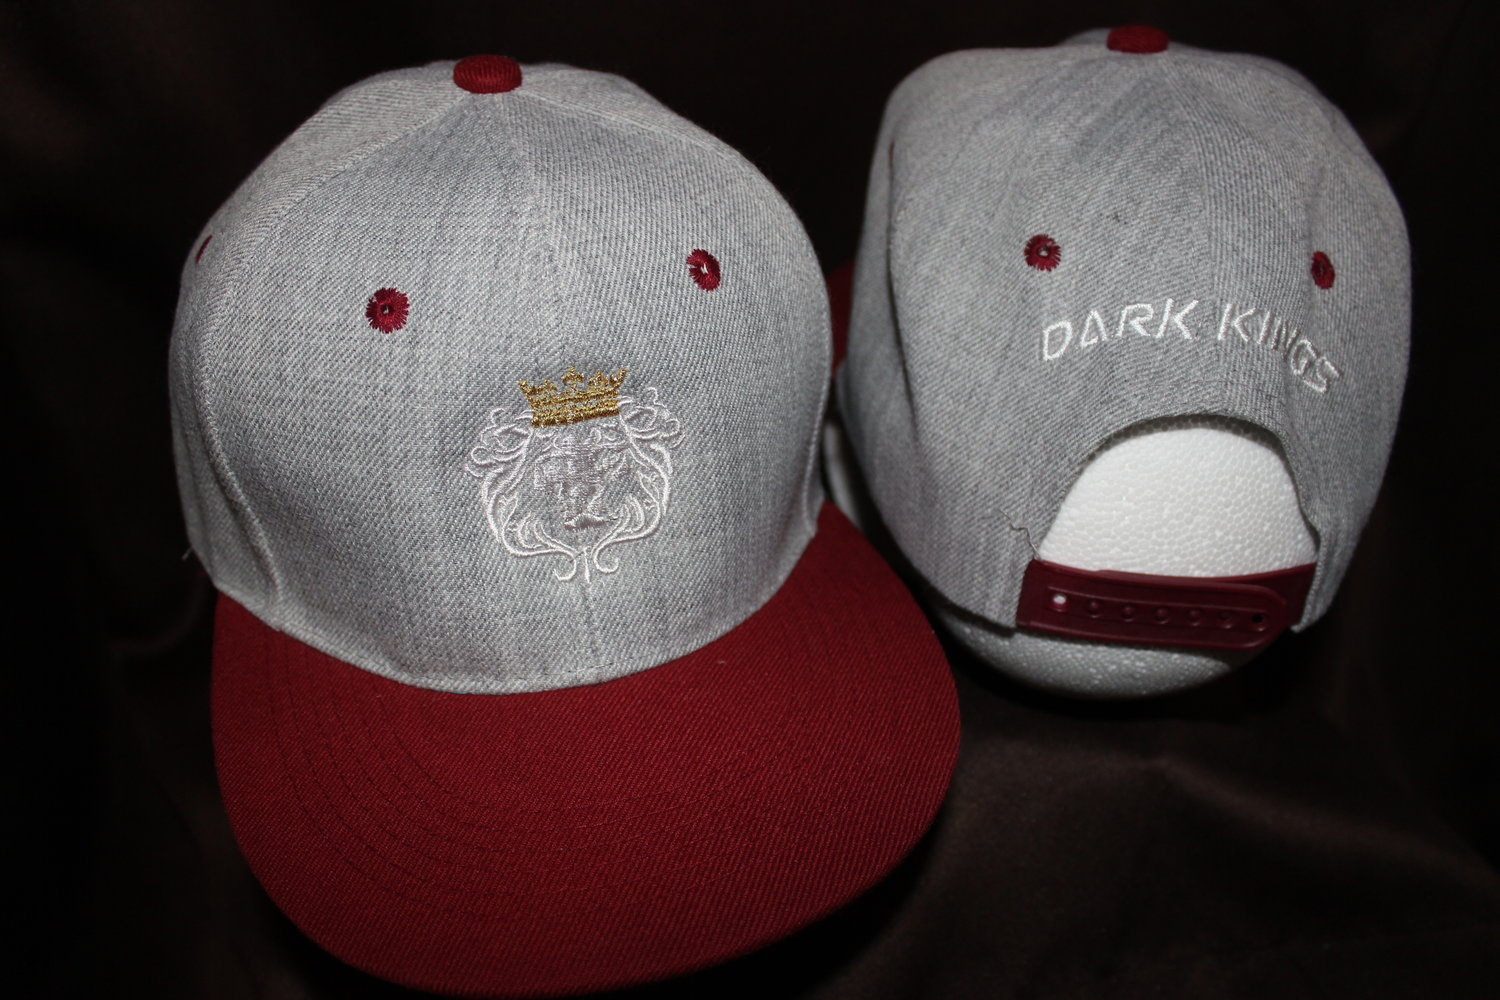 39c5d28f Brown Dad Hat Distressed. 25.00 30.00. sold out. IMG_9972.JPG